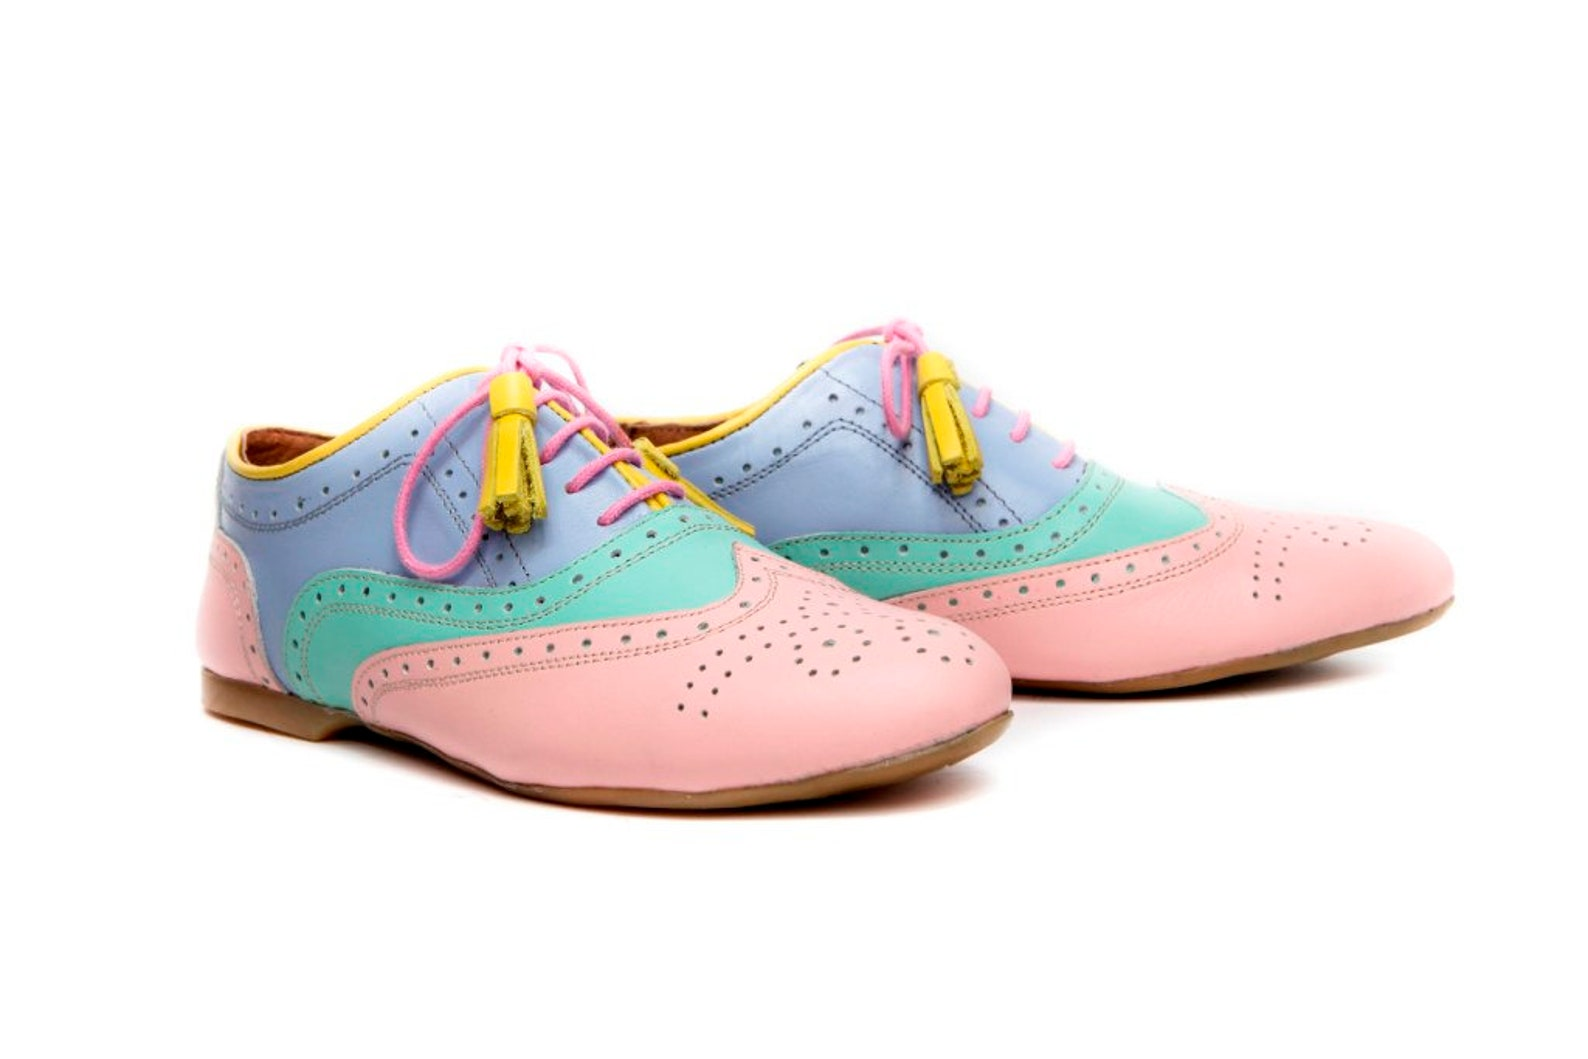 women's oxford shoes, ballet flats, leather ballet flats, handmade women's flats, pink shoes, mint shoes, blue shoes, ba